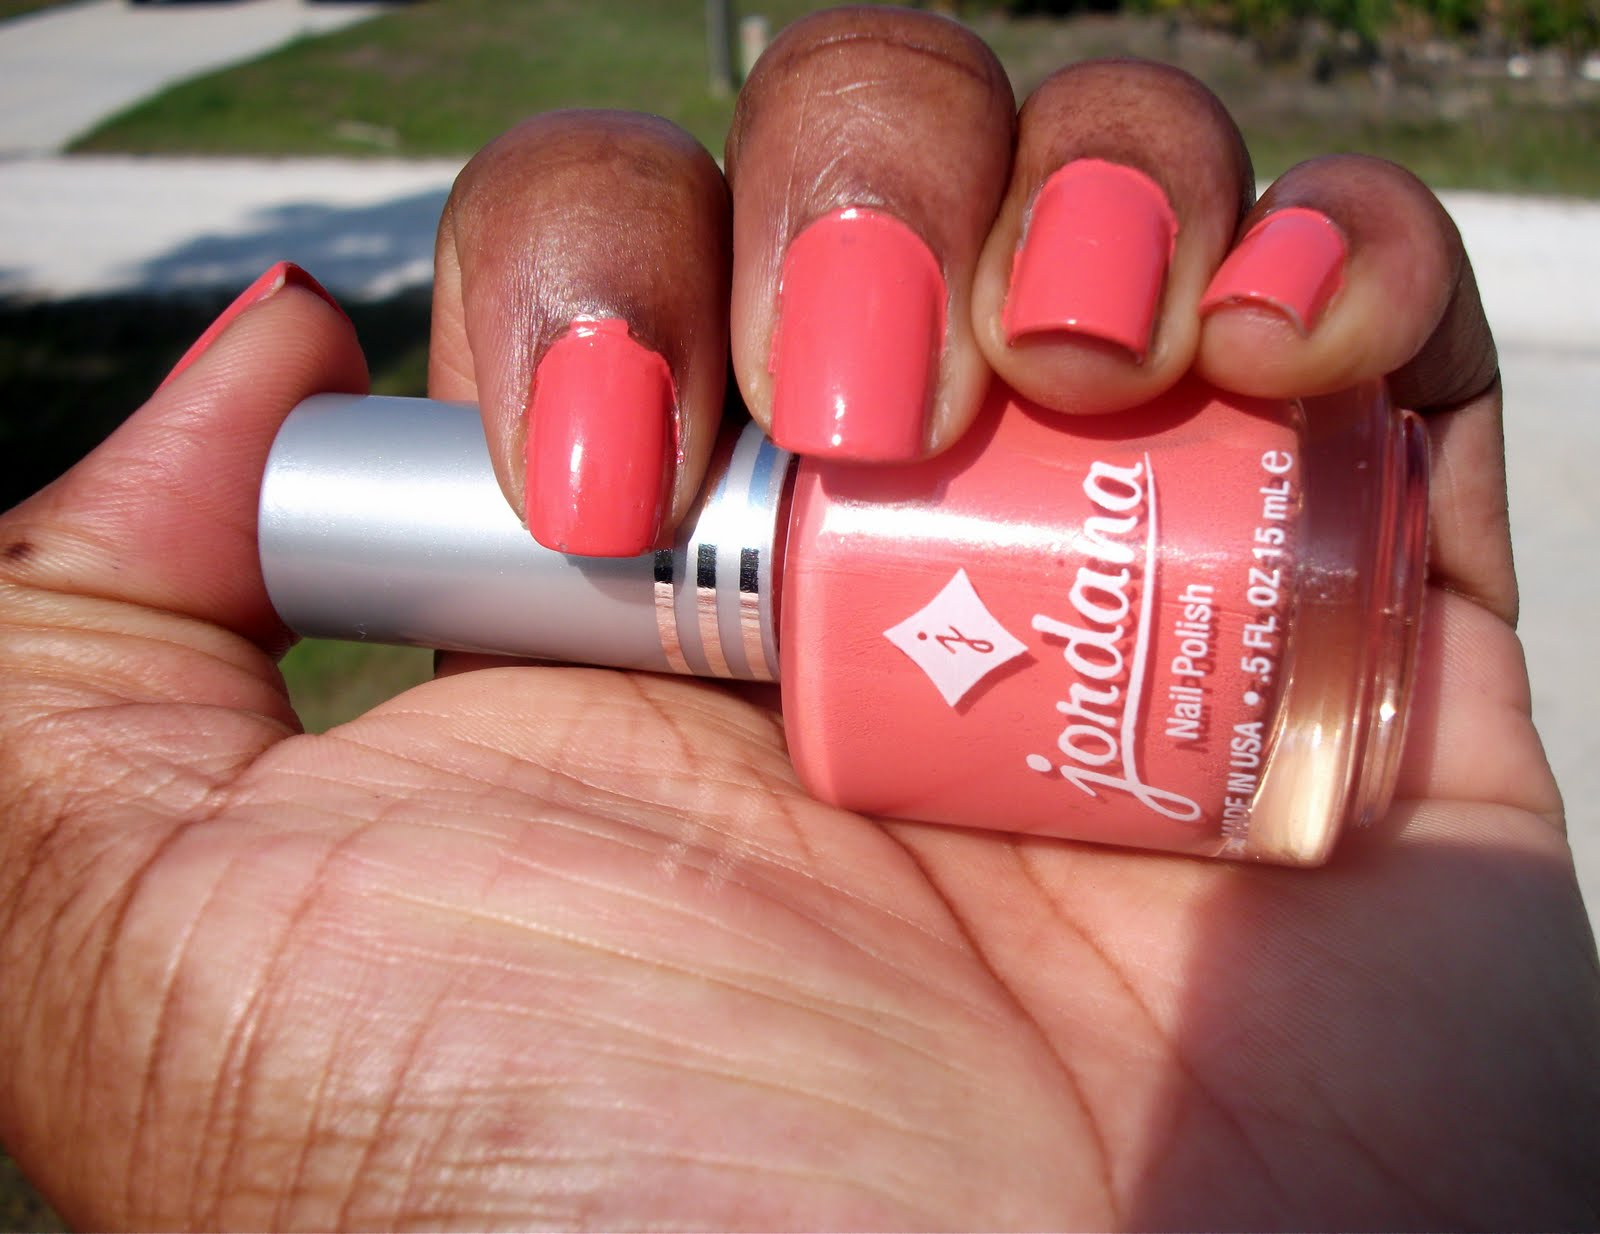 Cheapalicious: Cheapalicious Beauty: Jordana nail polish in \